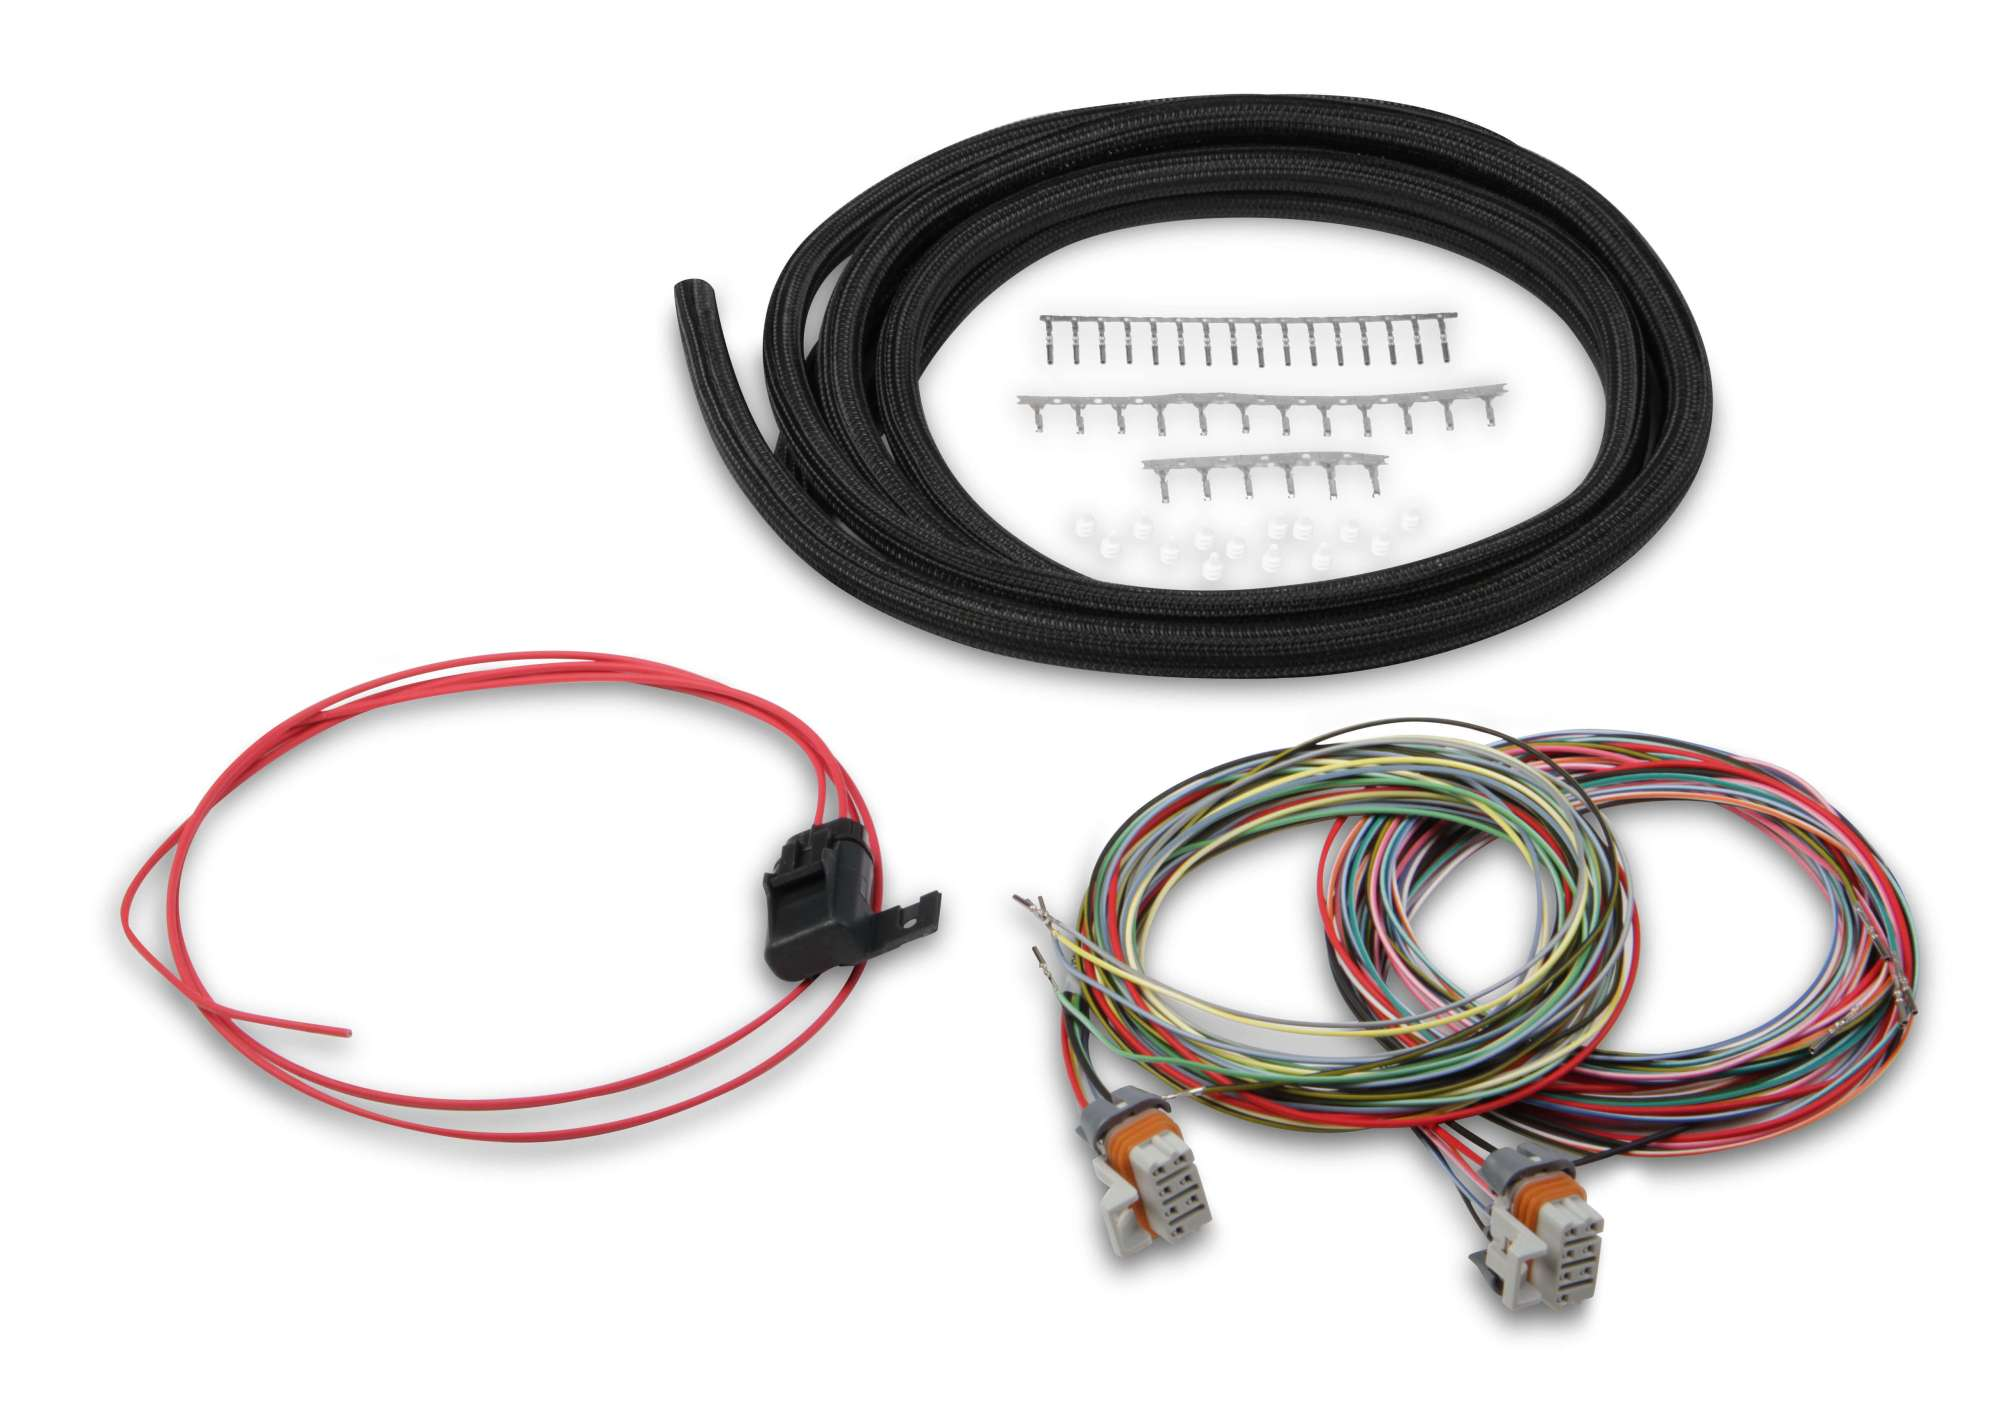 hight resolution of holley performance 558 307 engine control module wiring harness for use with holley hp zoomed image